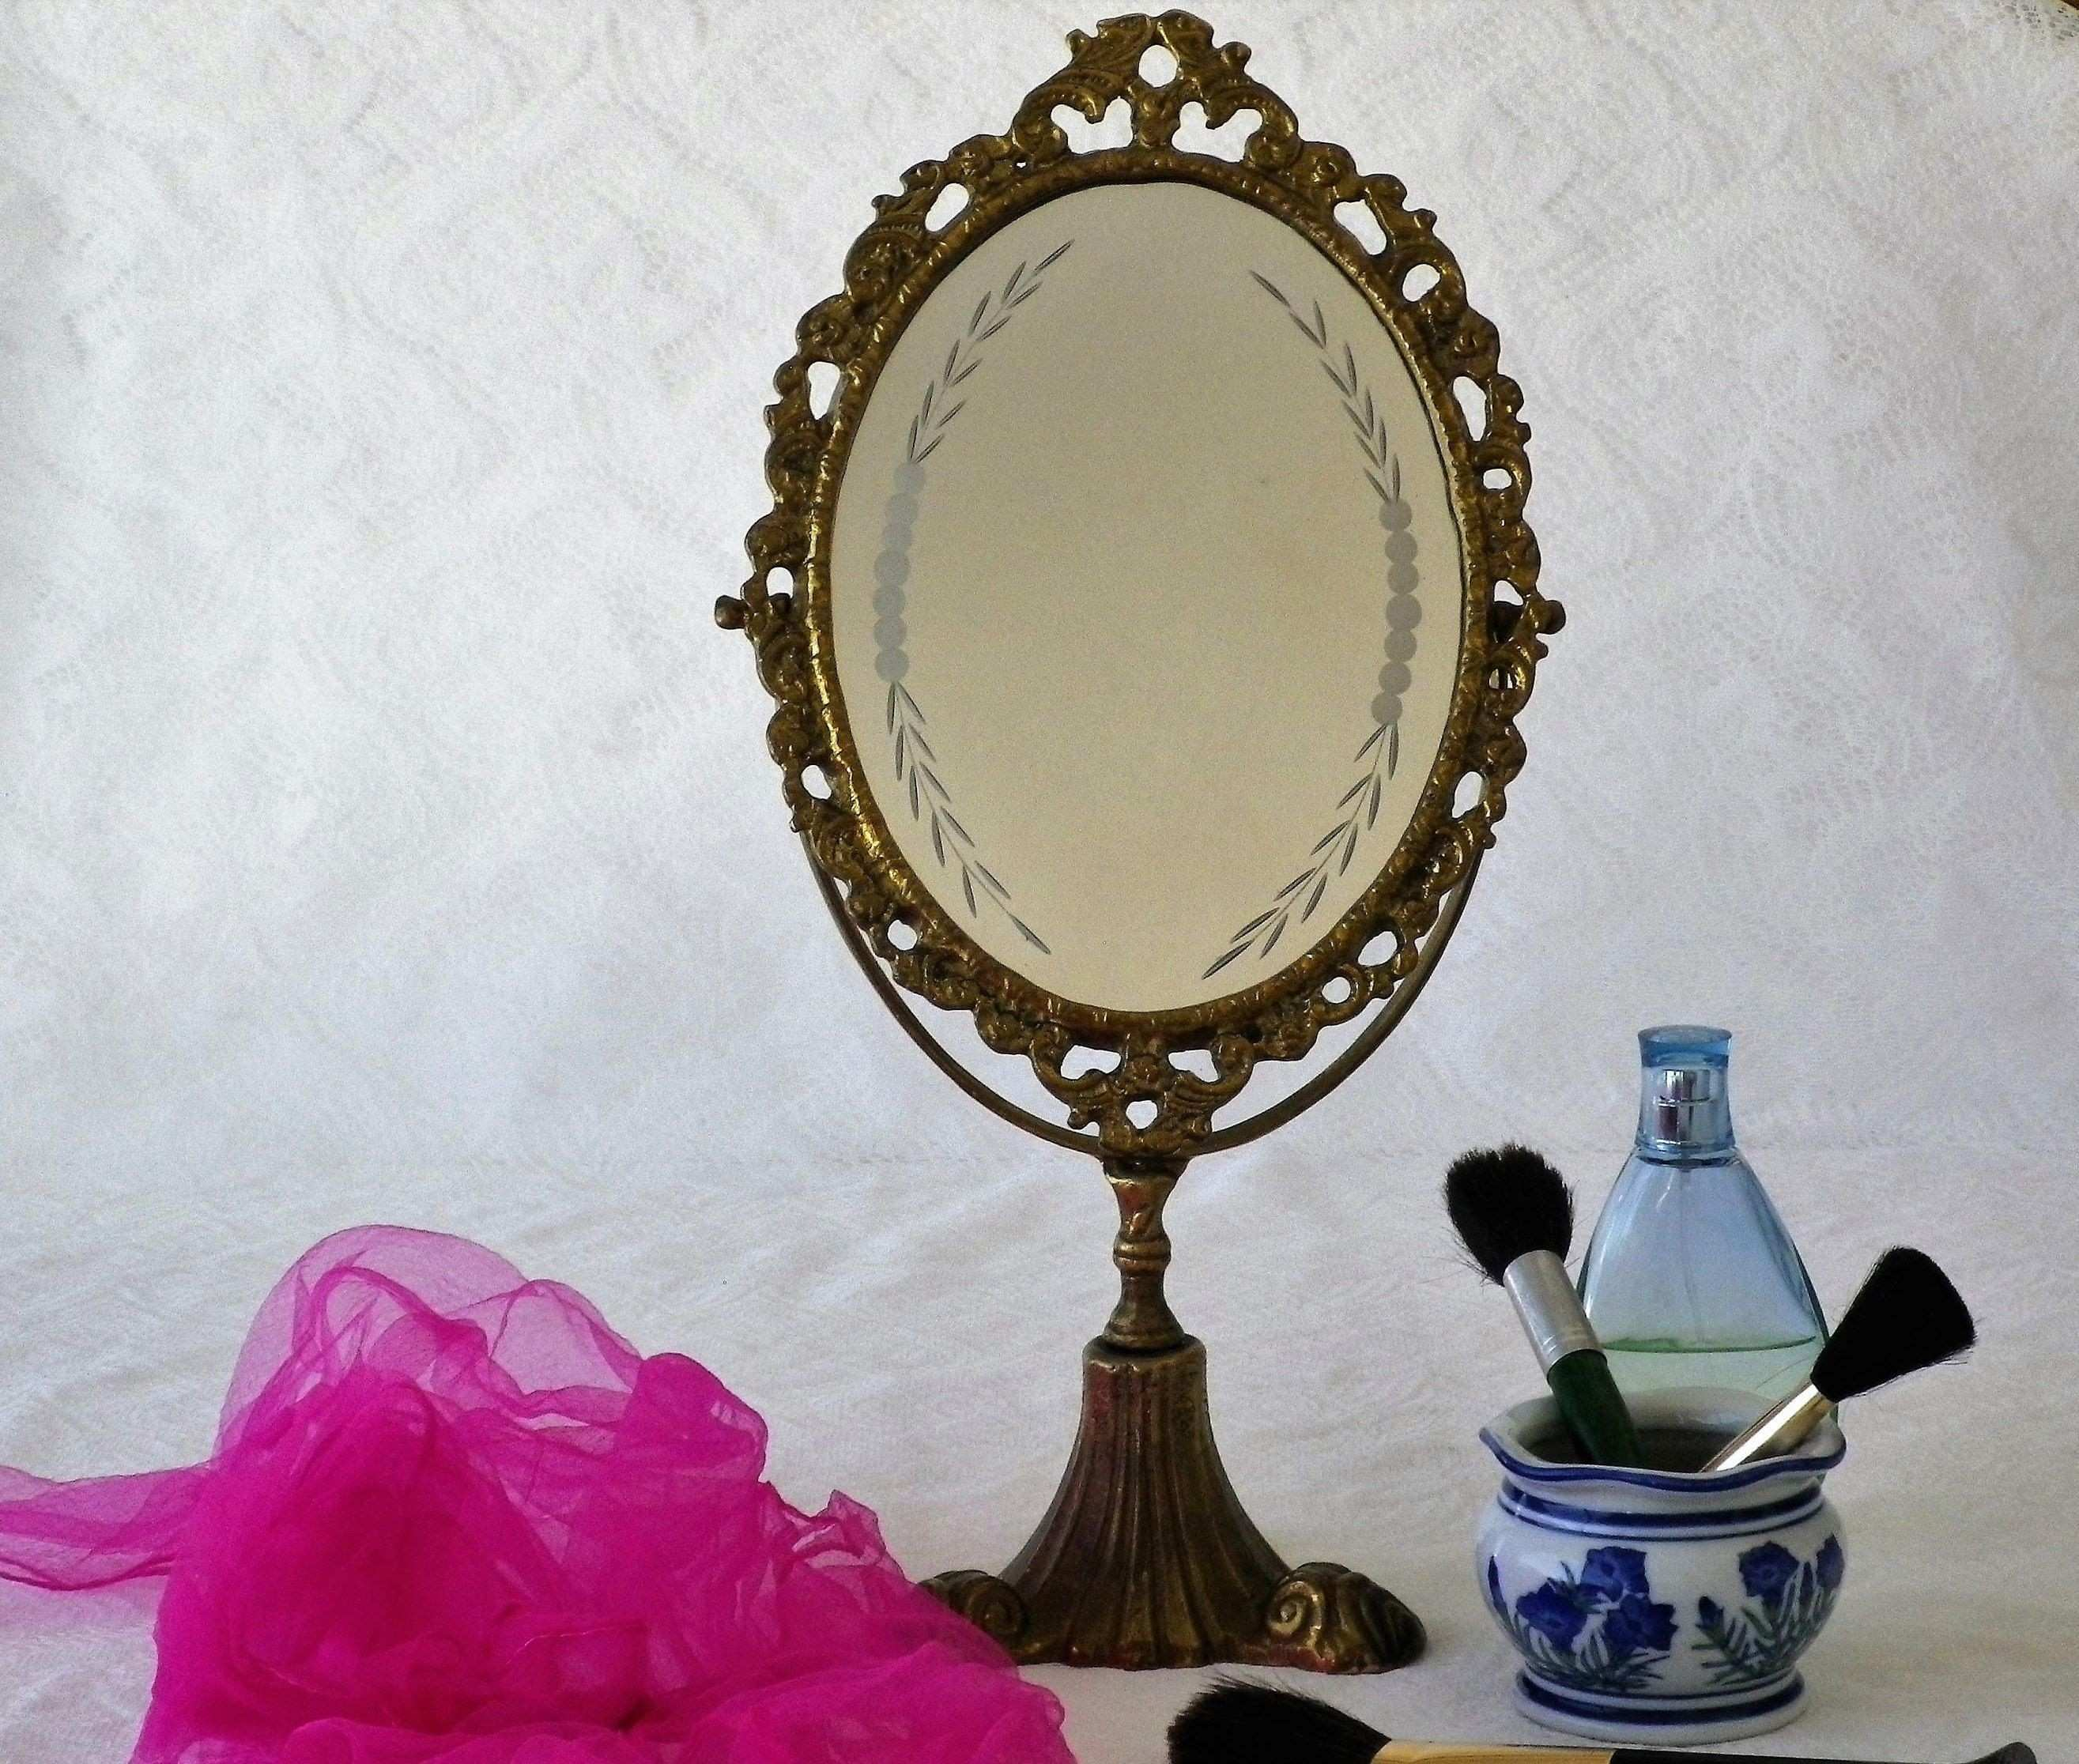 Adjustable Mirror Elegant Brass Oval Vanity Mirror with original